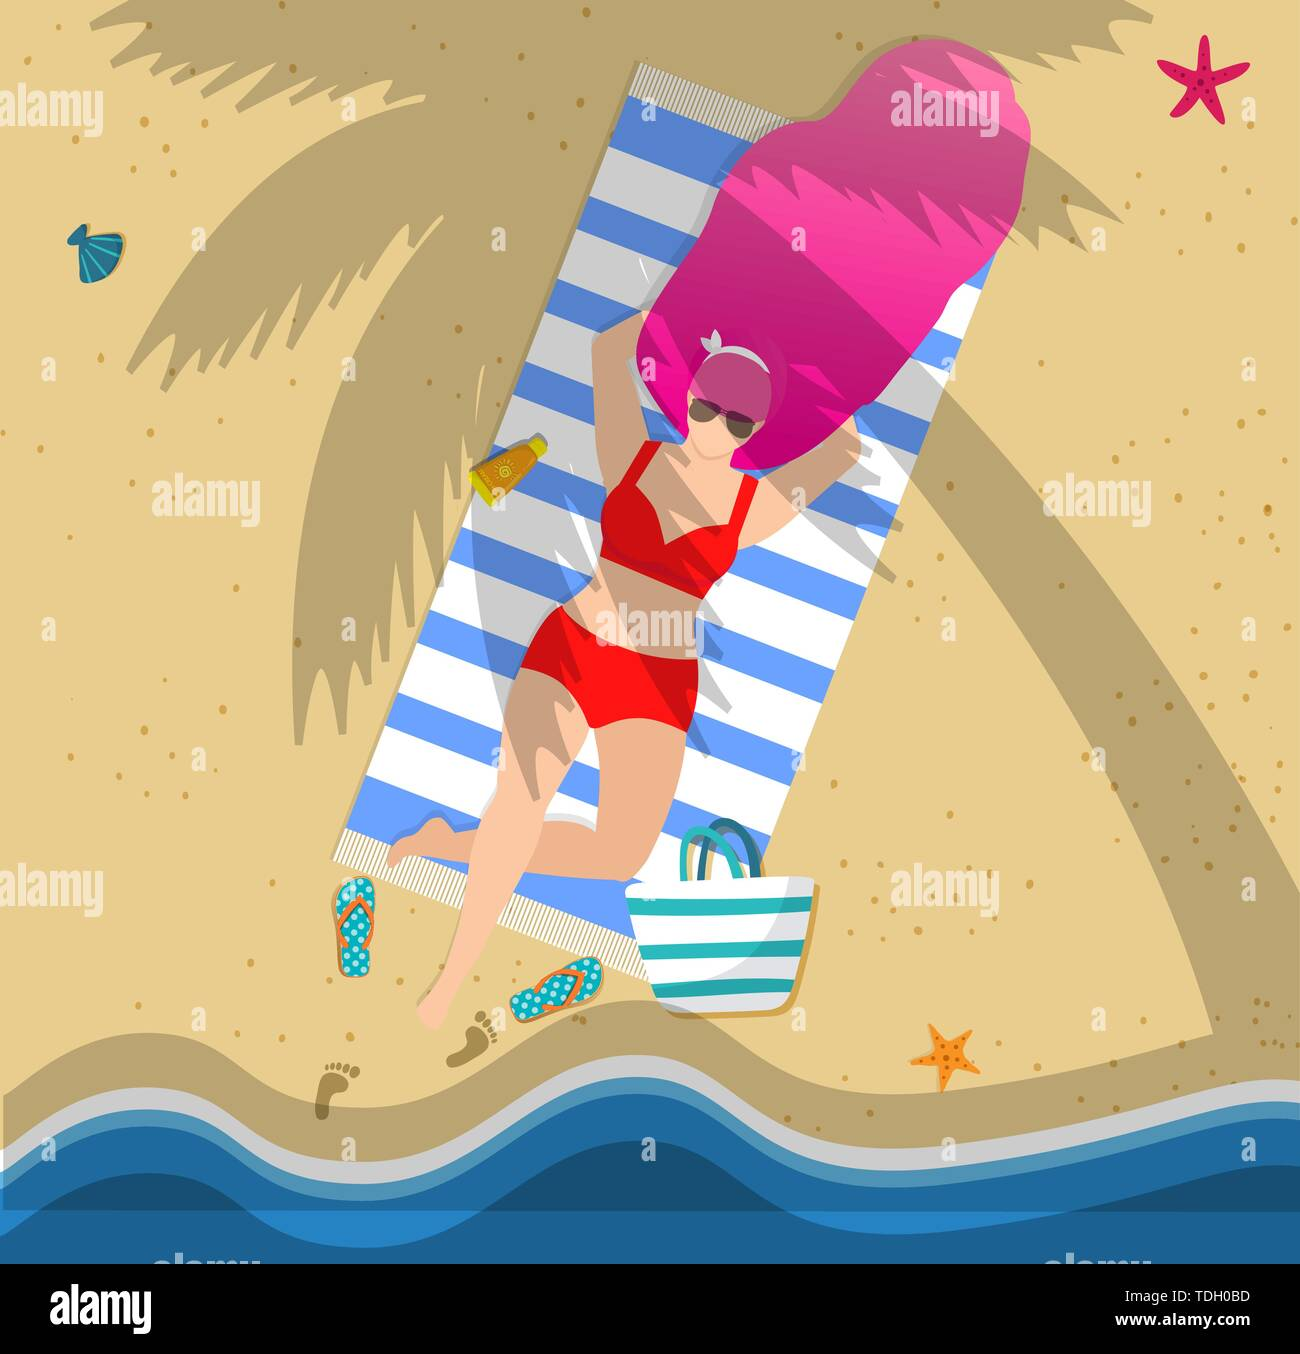 Woman on Beach Under Palm Tree. Summer Time Vacation, Leisure, Beautiful Girl Character in Sunglasses and Bikini Relaxing on Sandy Seaside. Resort Spa - Stock Vector